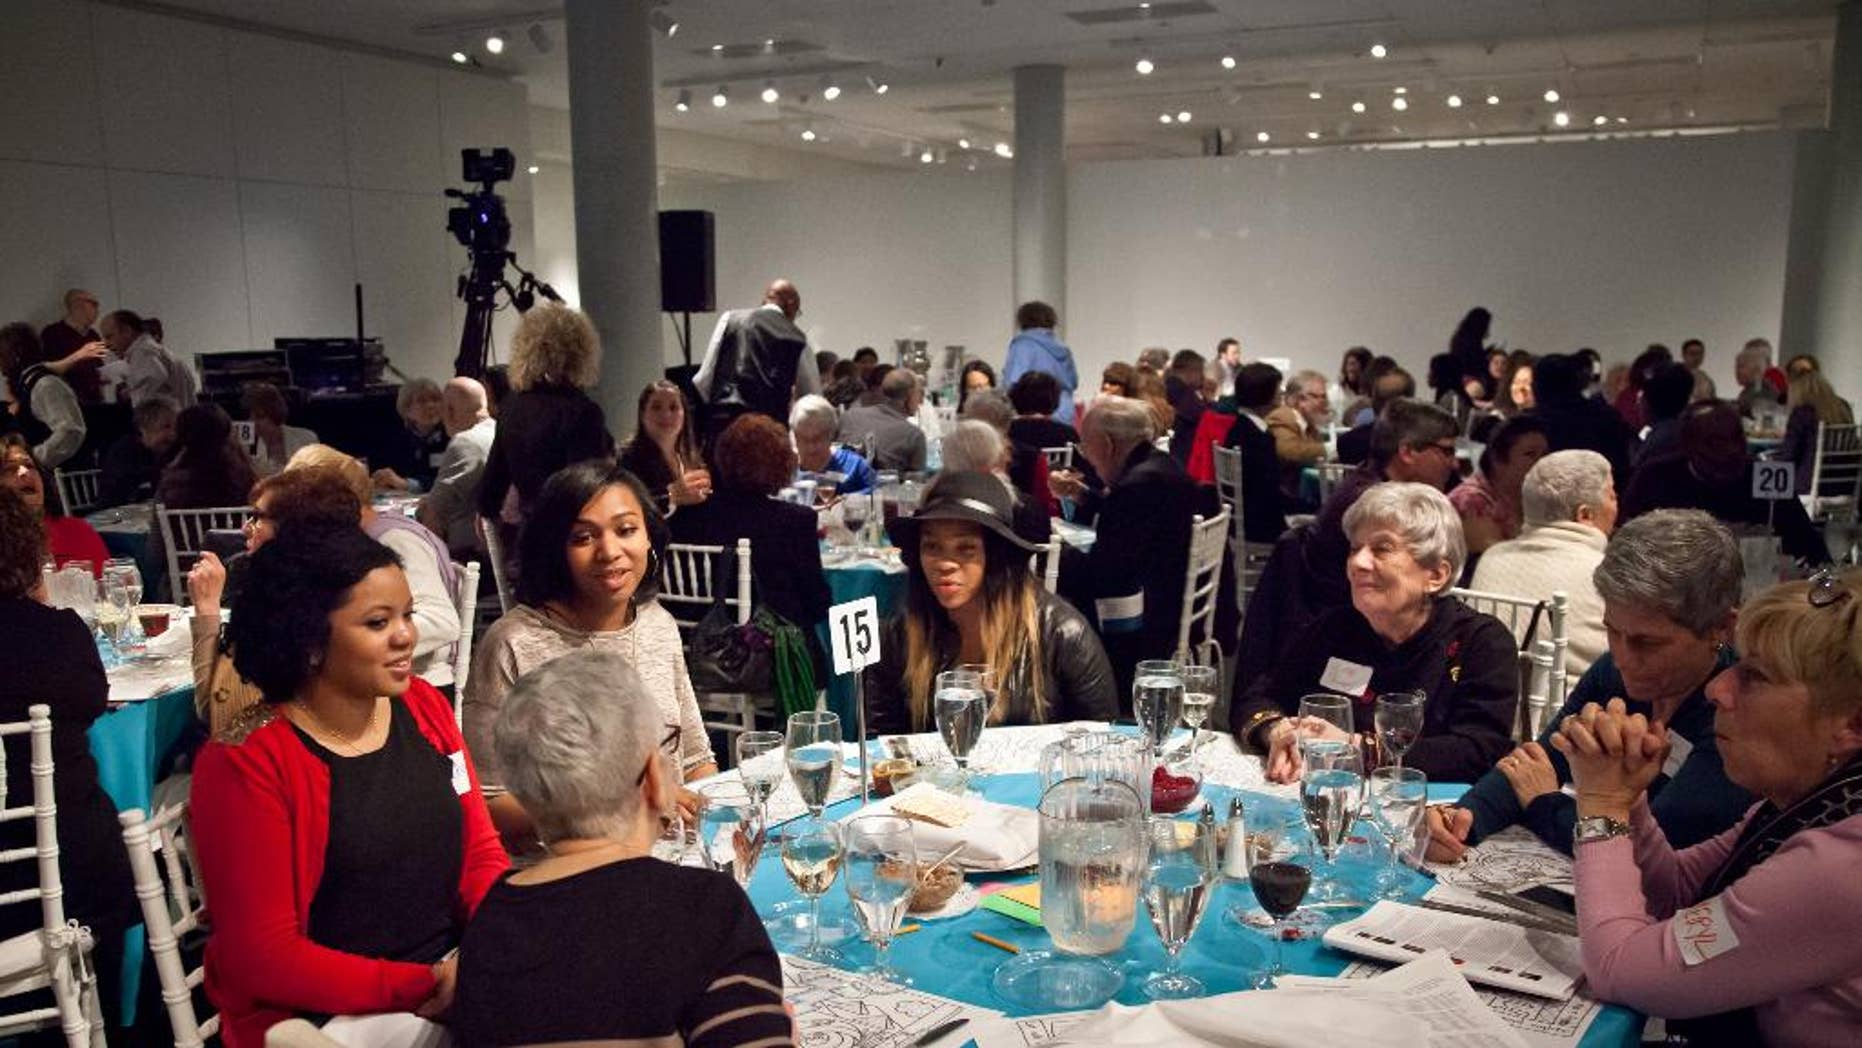 In this Wed., March 25, 2015 photo provided by Matthew Christopher, participants attend Freedom Seder Revisited at the National Museum of American Jewish History in Philadelphia. The event embraces gentiles for an evening of storytelling, music and a taste of traditional Passover food and rituals as it honors the original interfaith Freedom Seder held in 1969 in Washington, D.C., on the first anniversary of Martin Luther King Jr.'s assassination. (AP Photo/Courtesy Matthew Christopher)